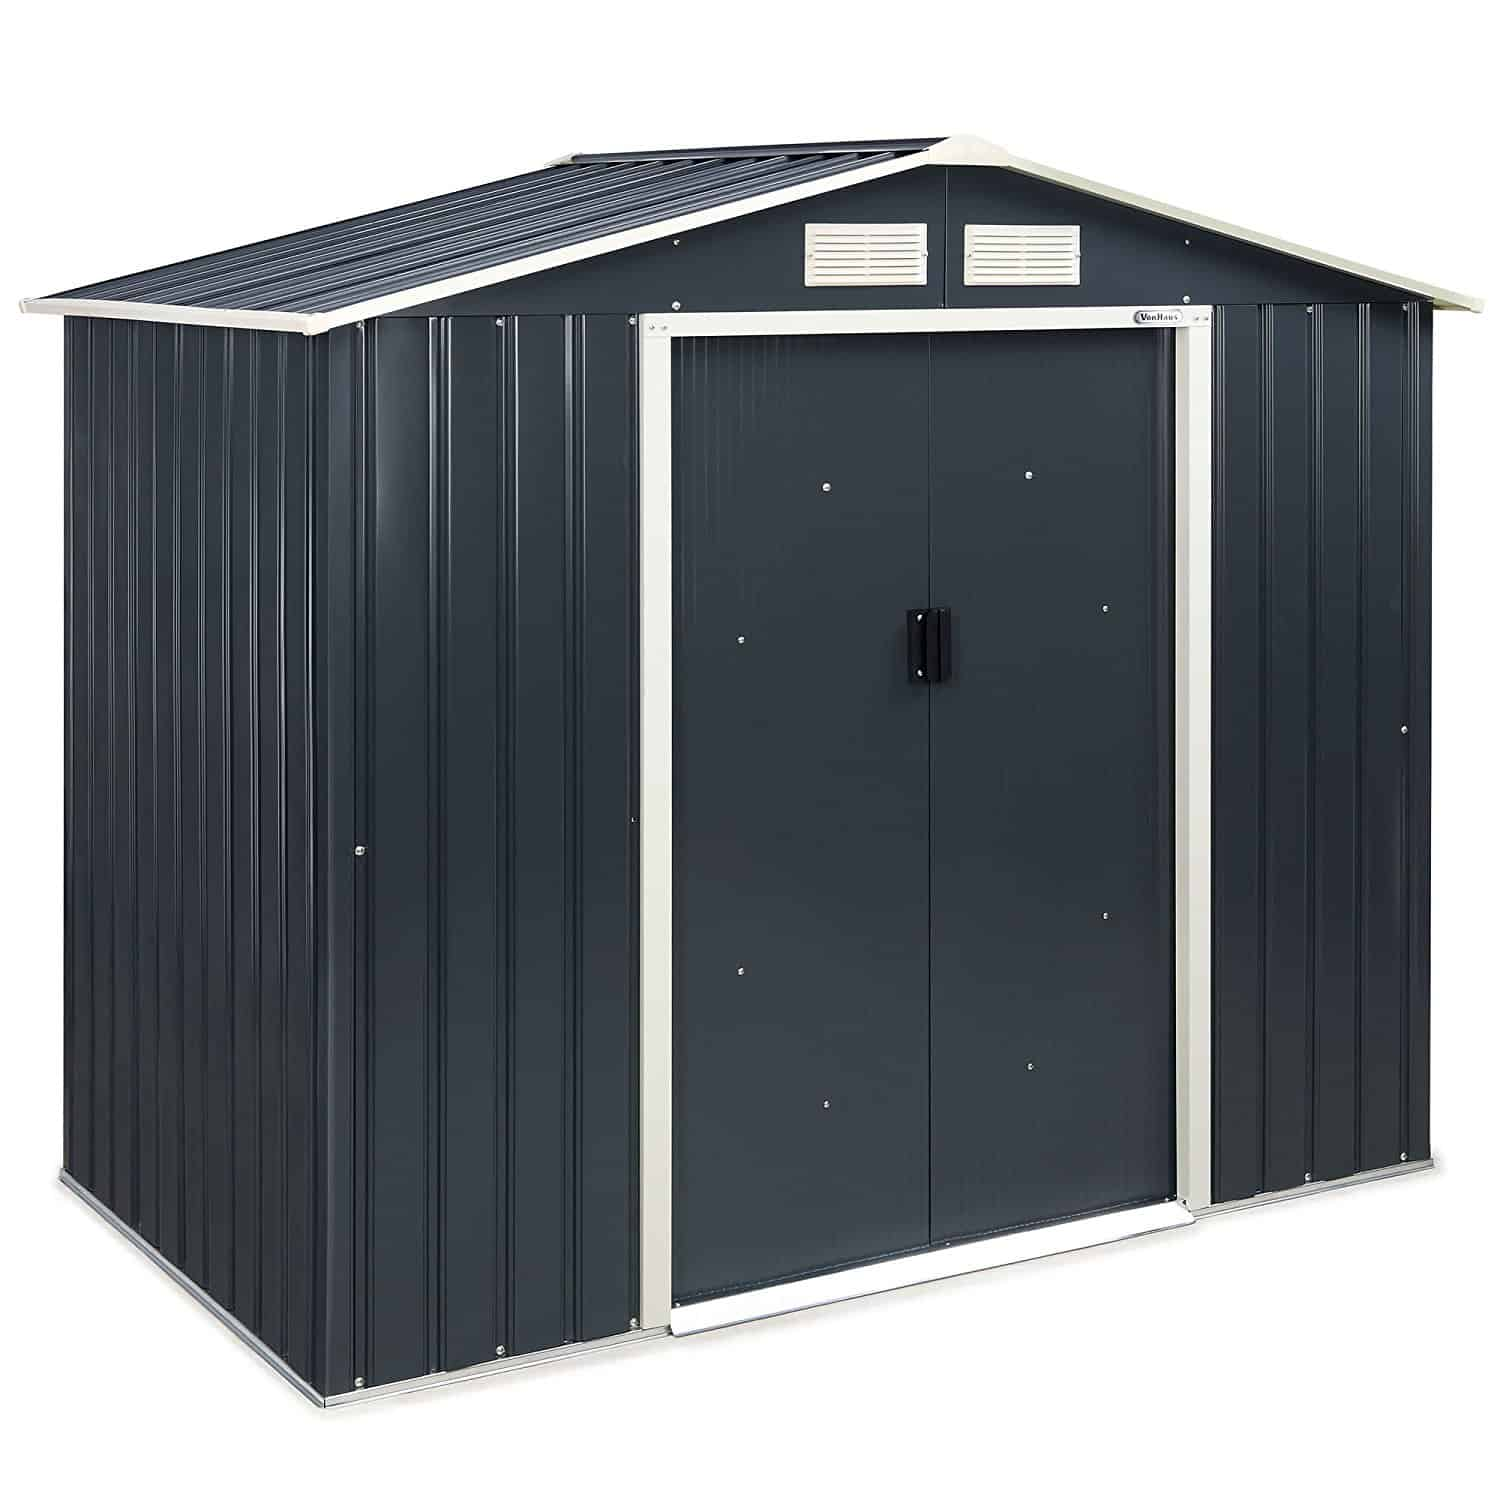 VonHaus metal storage shed